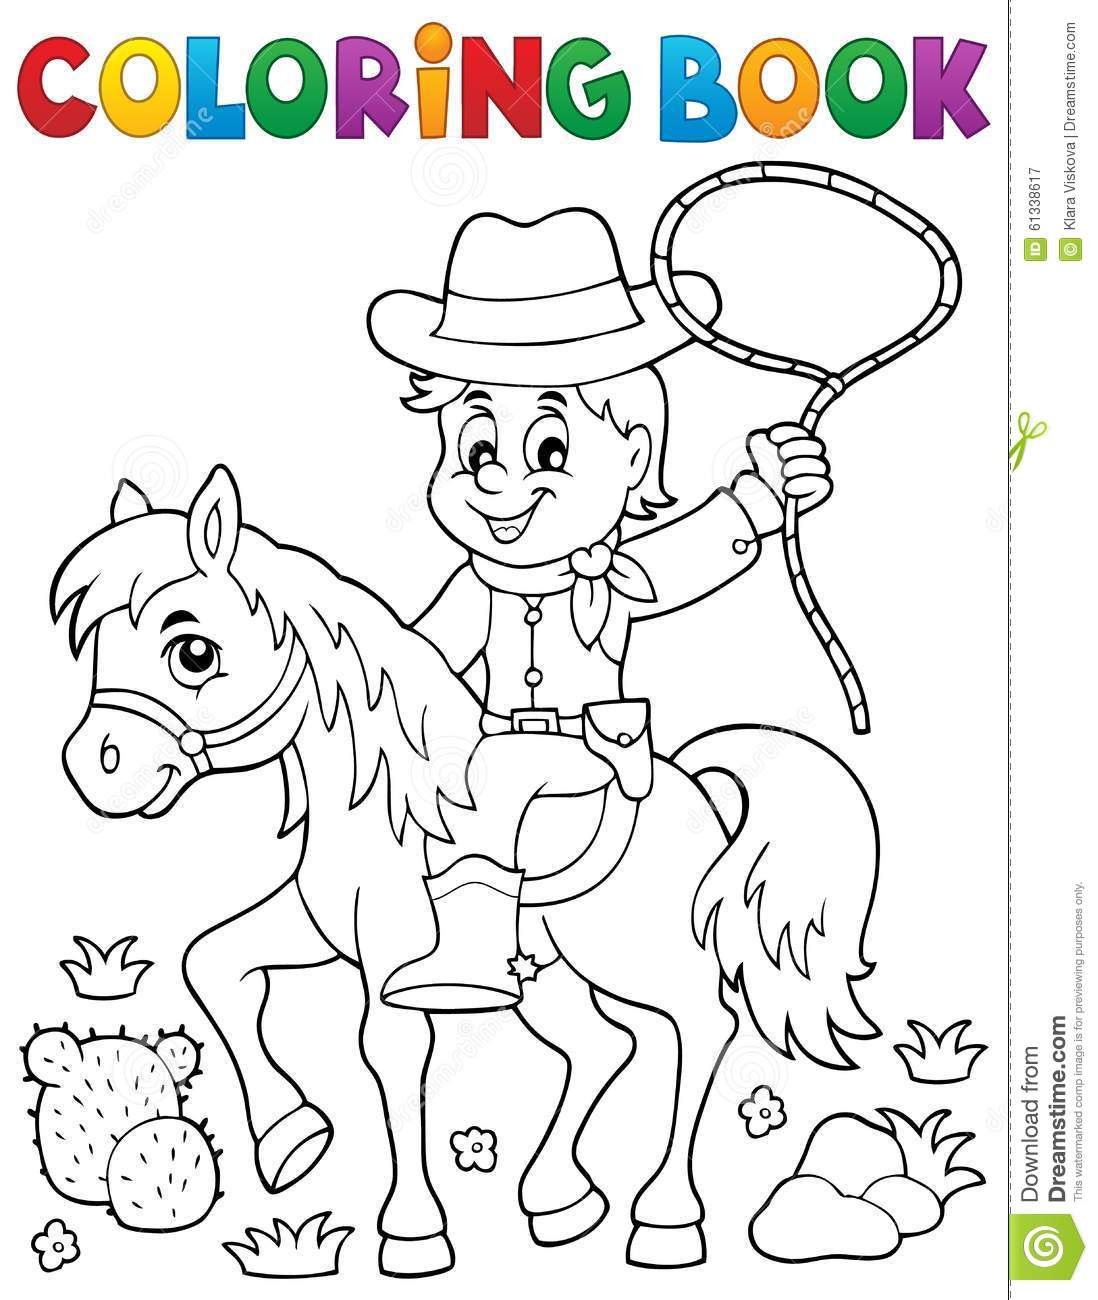 Coloring book cowboy on horse theme 1